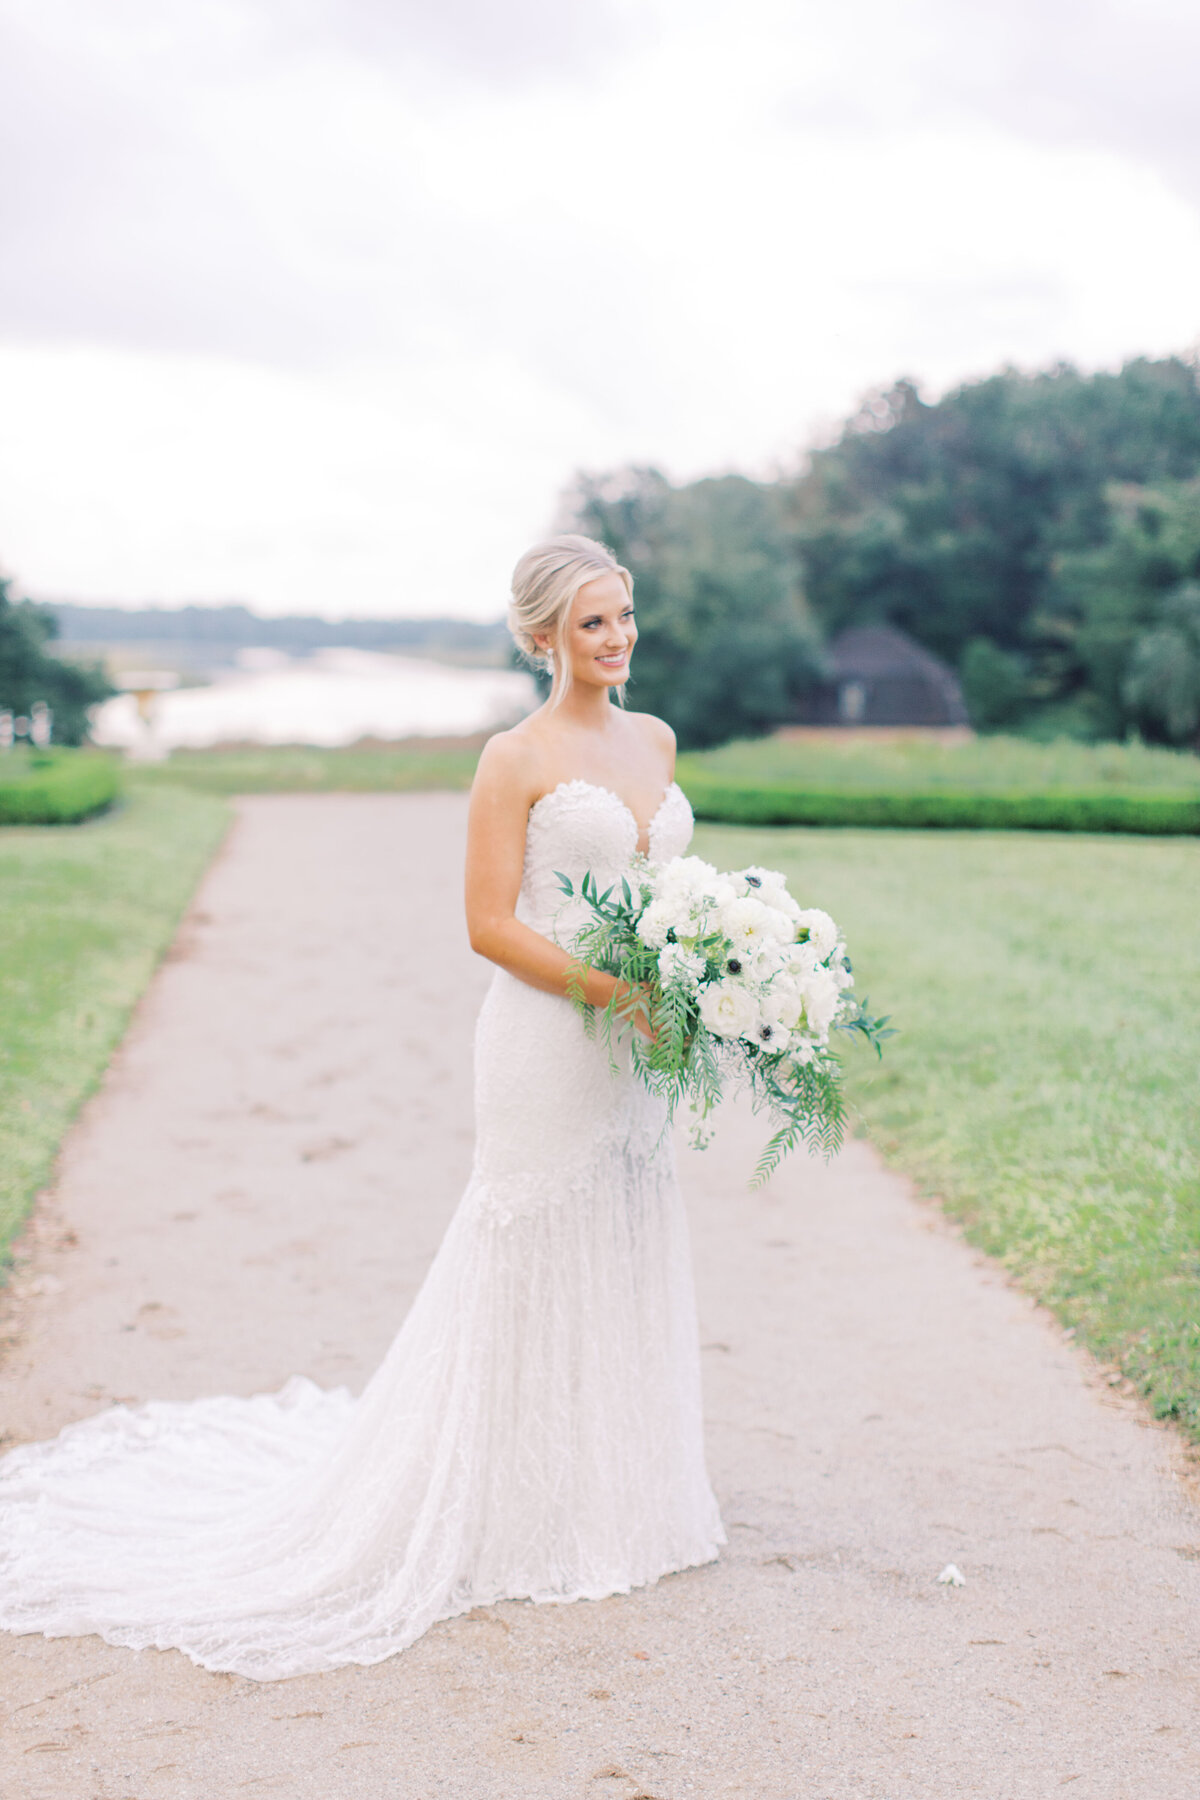 Melton_Wedding__Middleton_Place_Plantation_Charleston_South_Carolina_Jacksonville_Florida_Devon_Donnahoo_Photography__0308